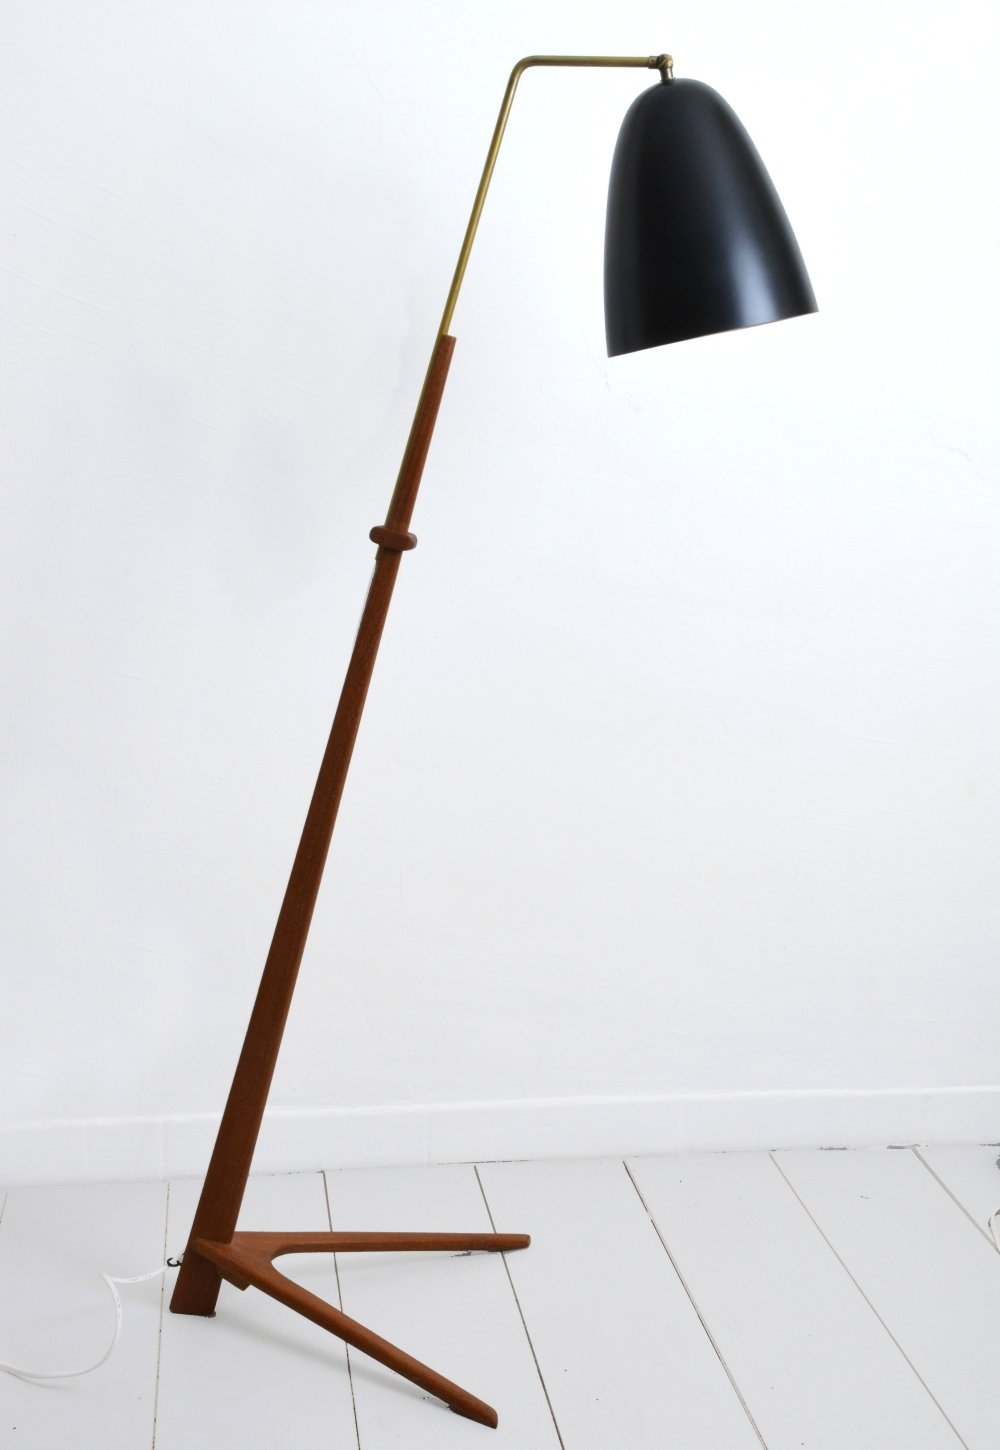 Floor lamp by Nigel Walters for Hagoort Lighting, 1950s